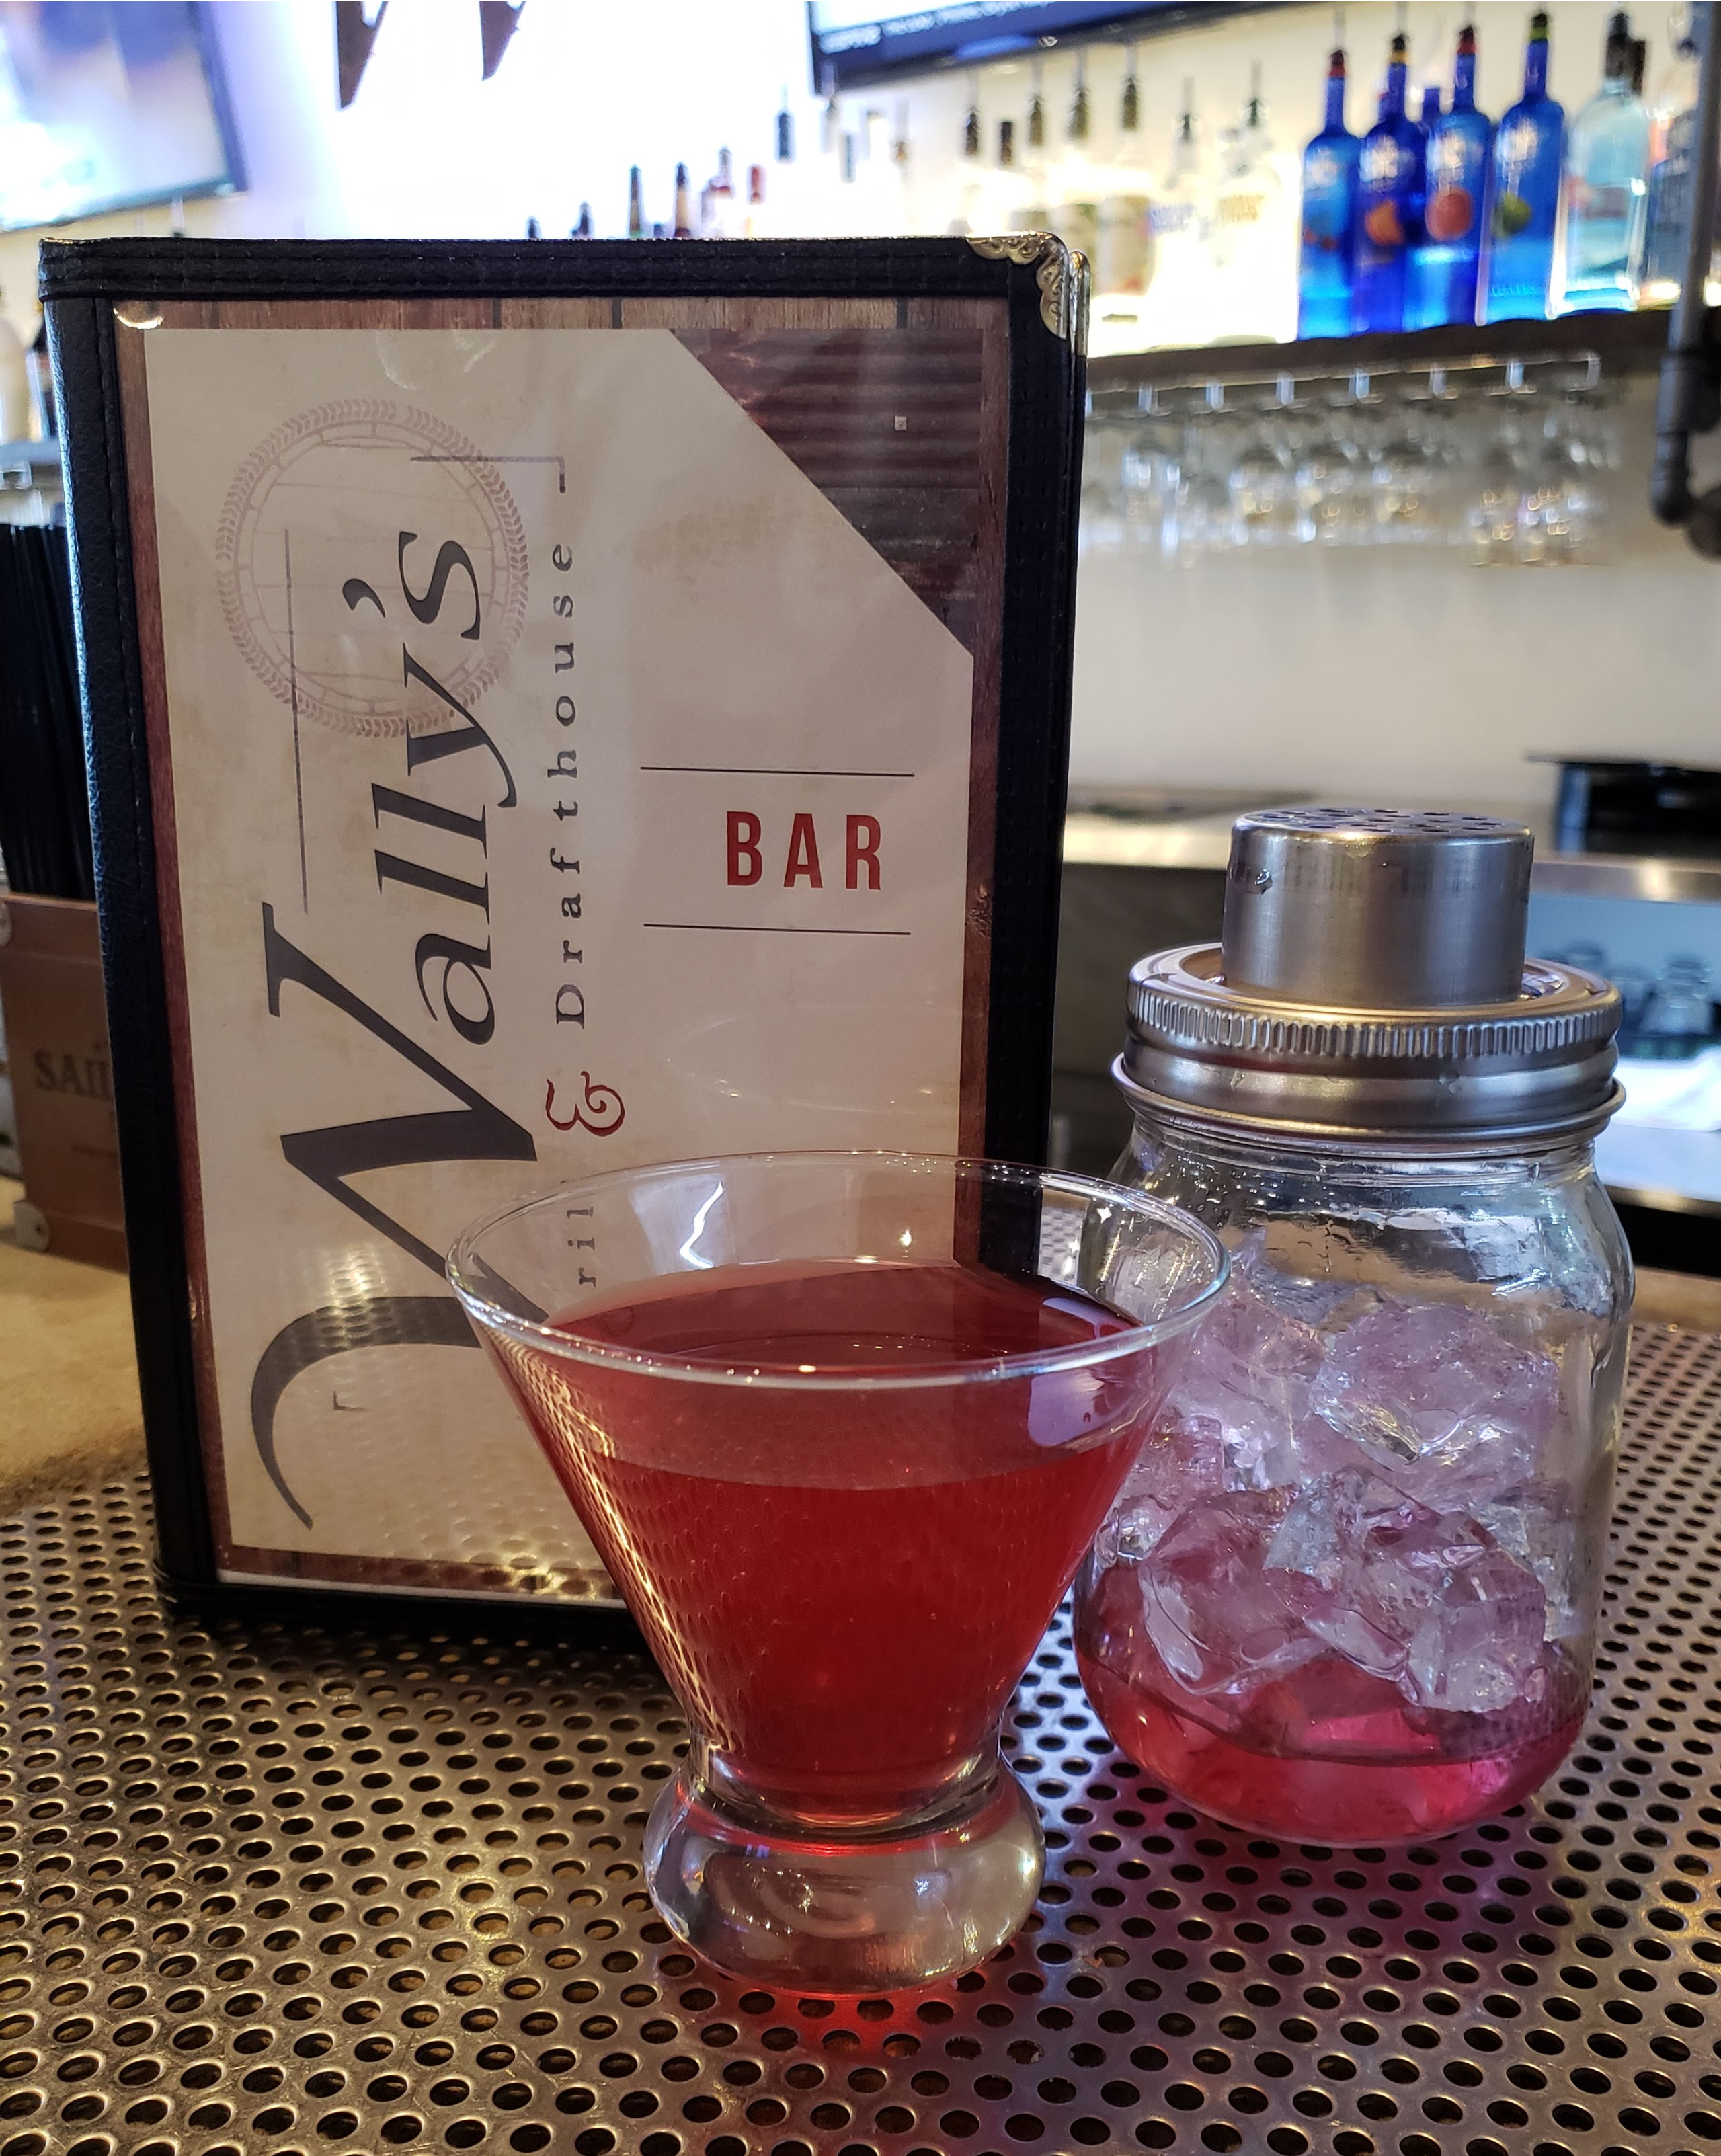 Blueberry Cosmo with house-made Blueberry Infused Vodka